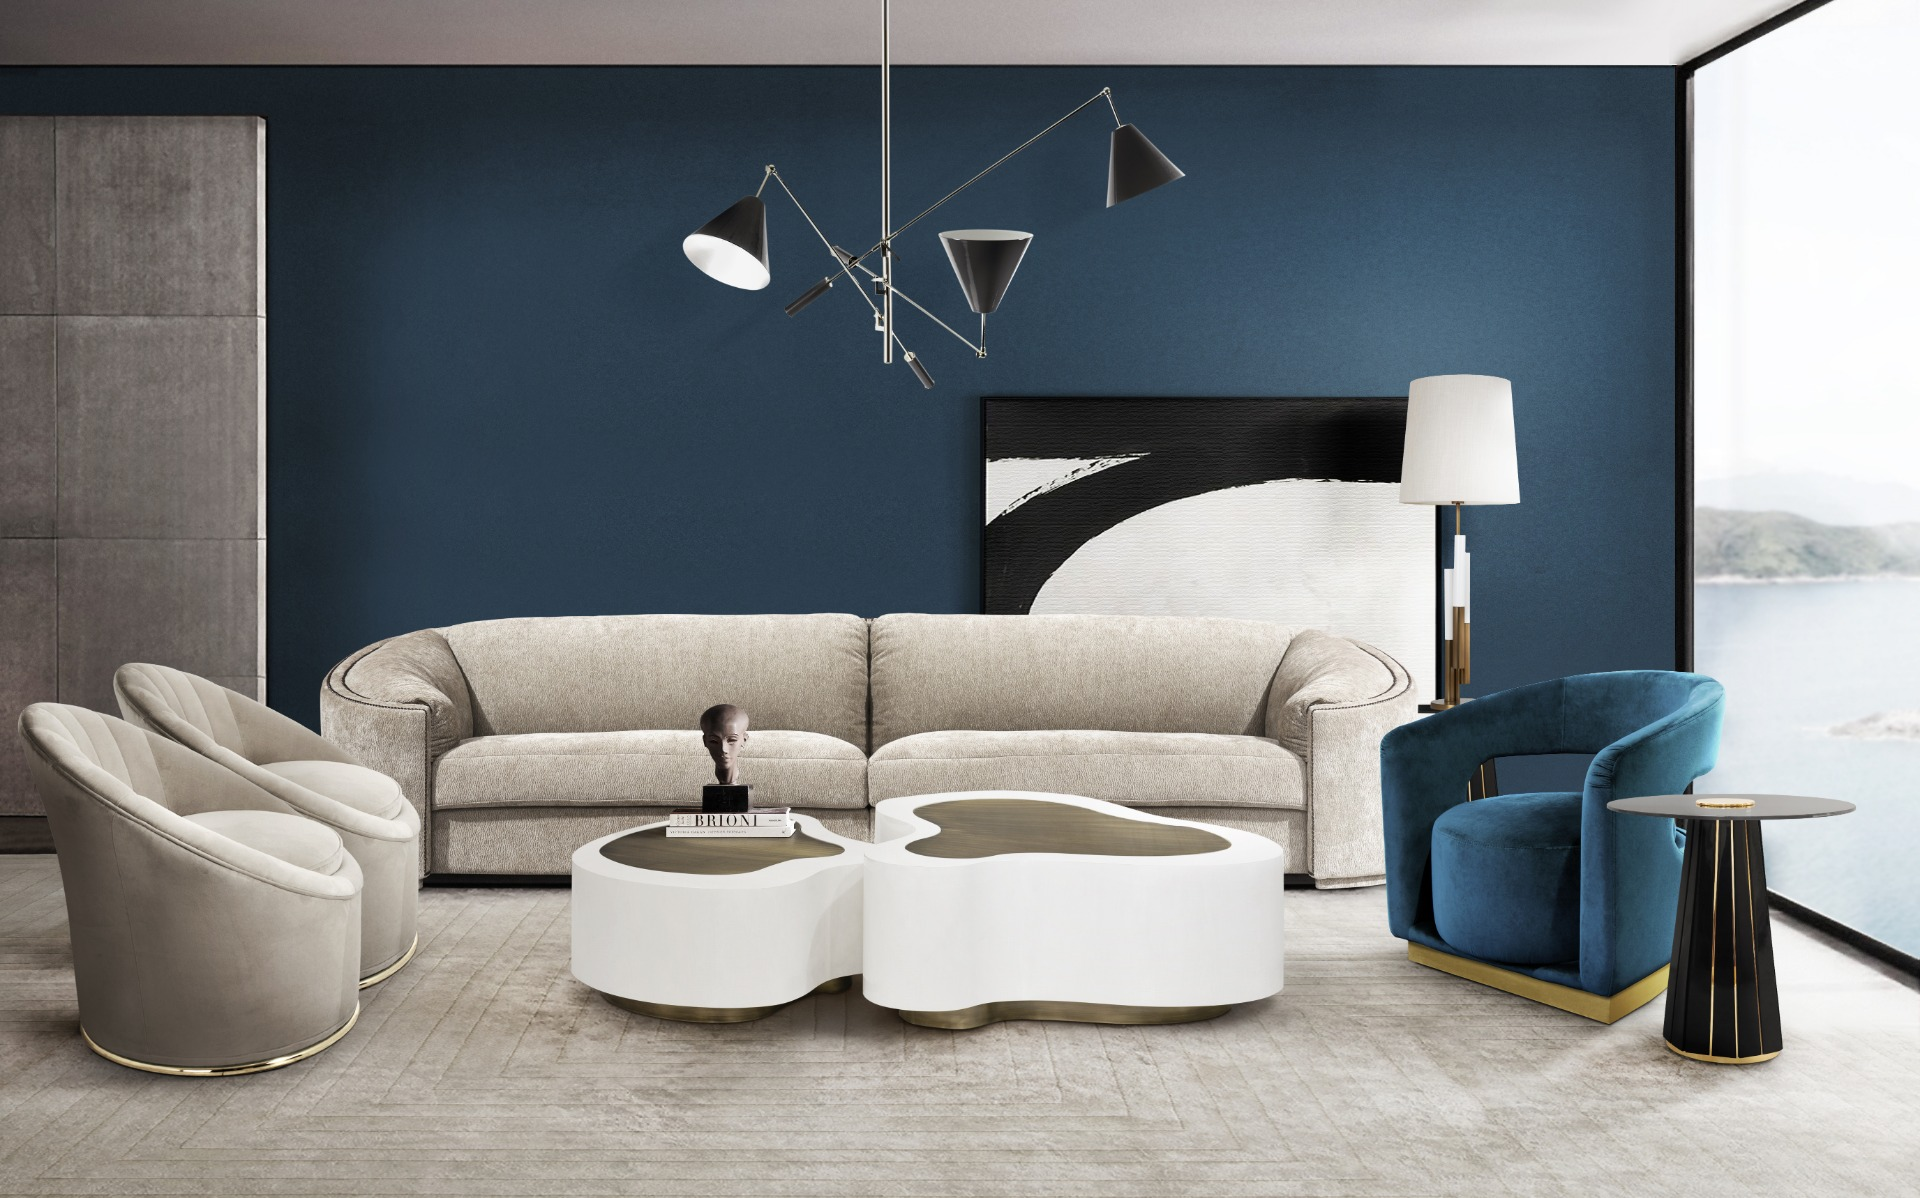 Blue_Modern__Stylish_Living_Room_Boca_do_Lobo_DelightFULL_Covet_House